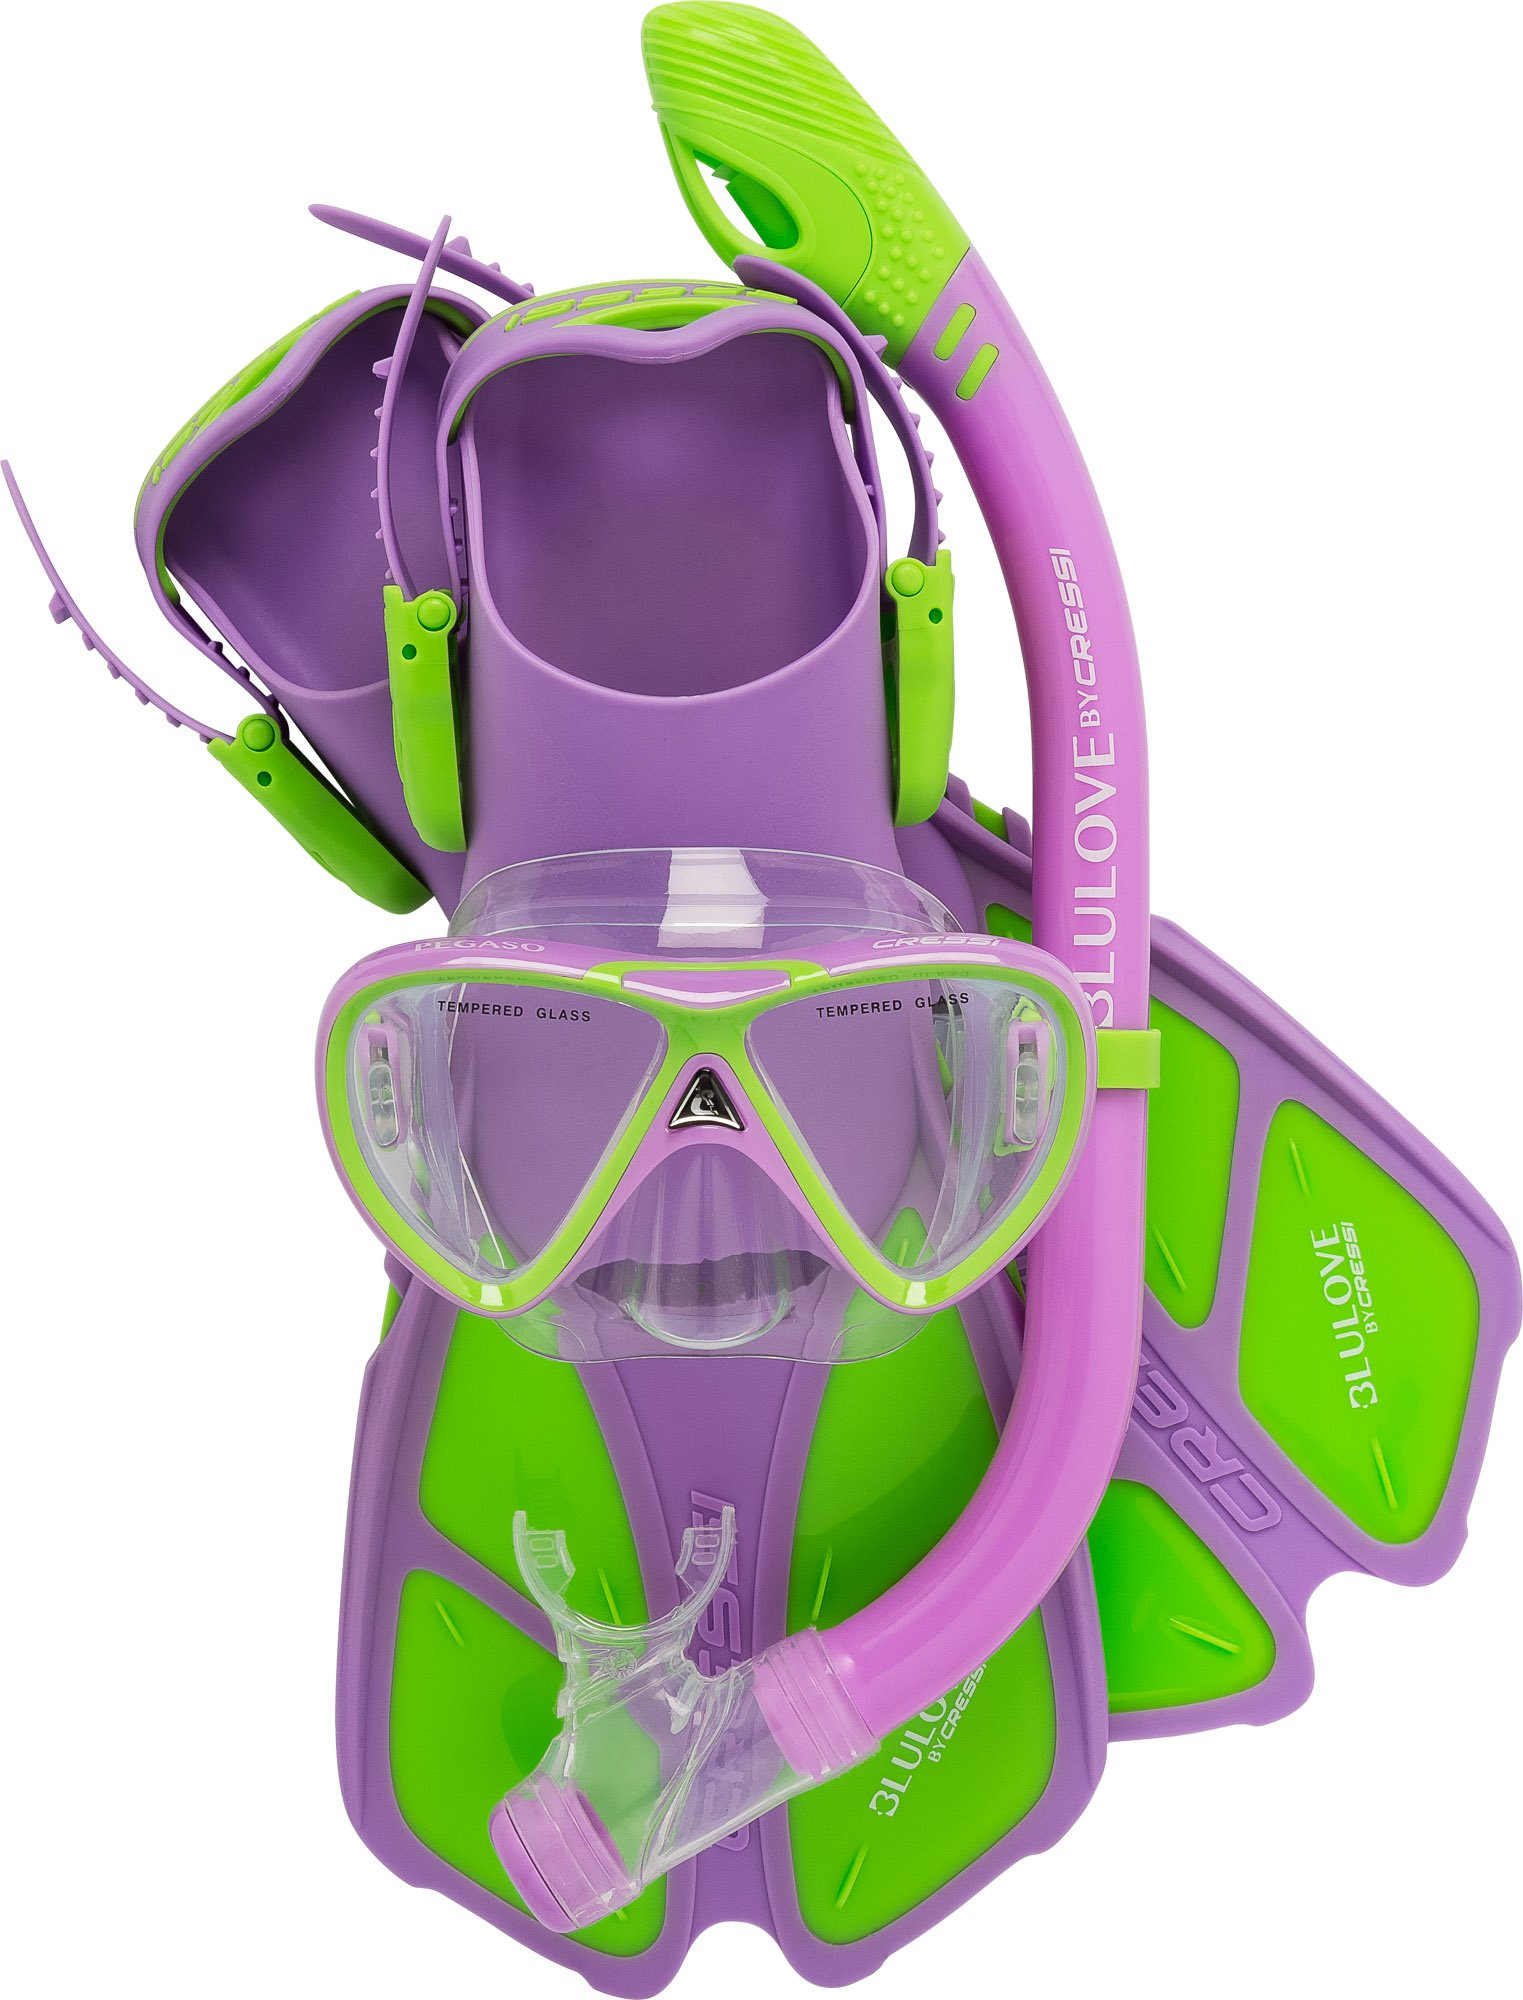 Cressi Mini Bonete Set, lilac/green, S/M by Cressi